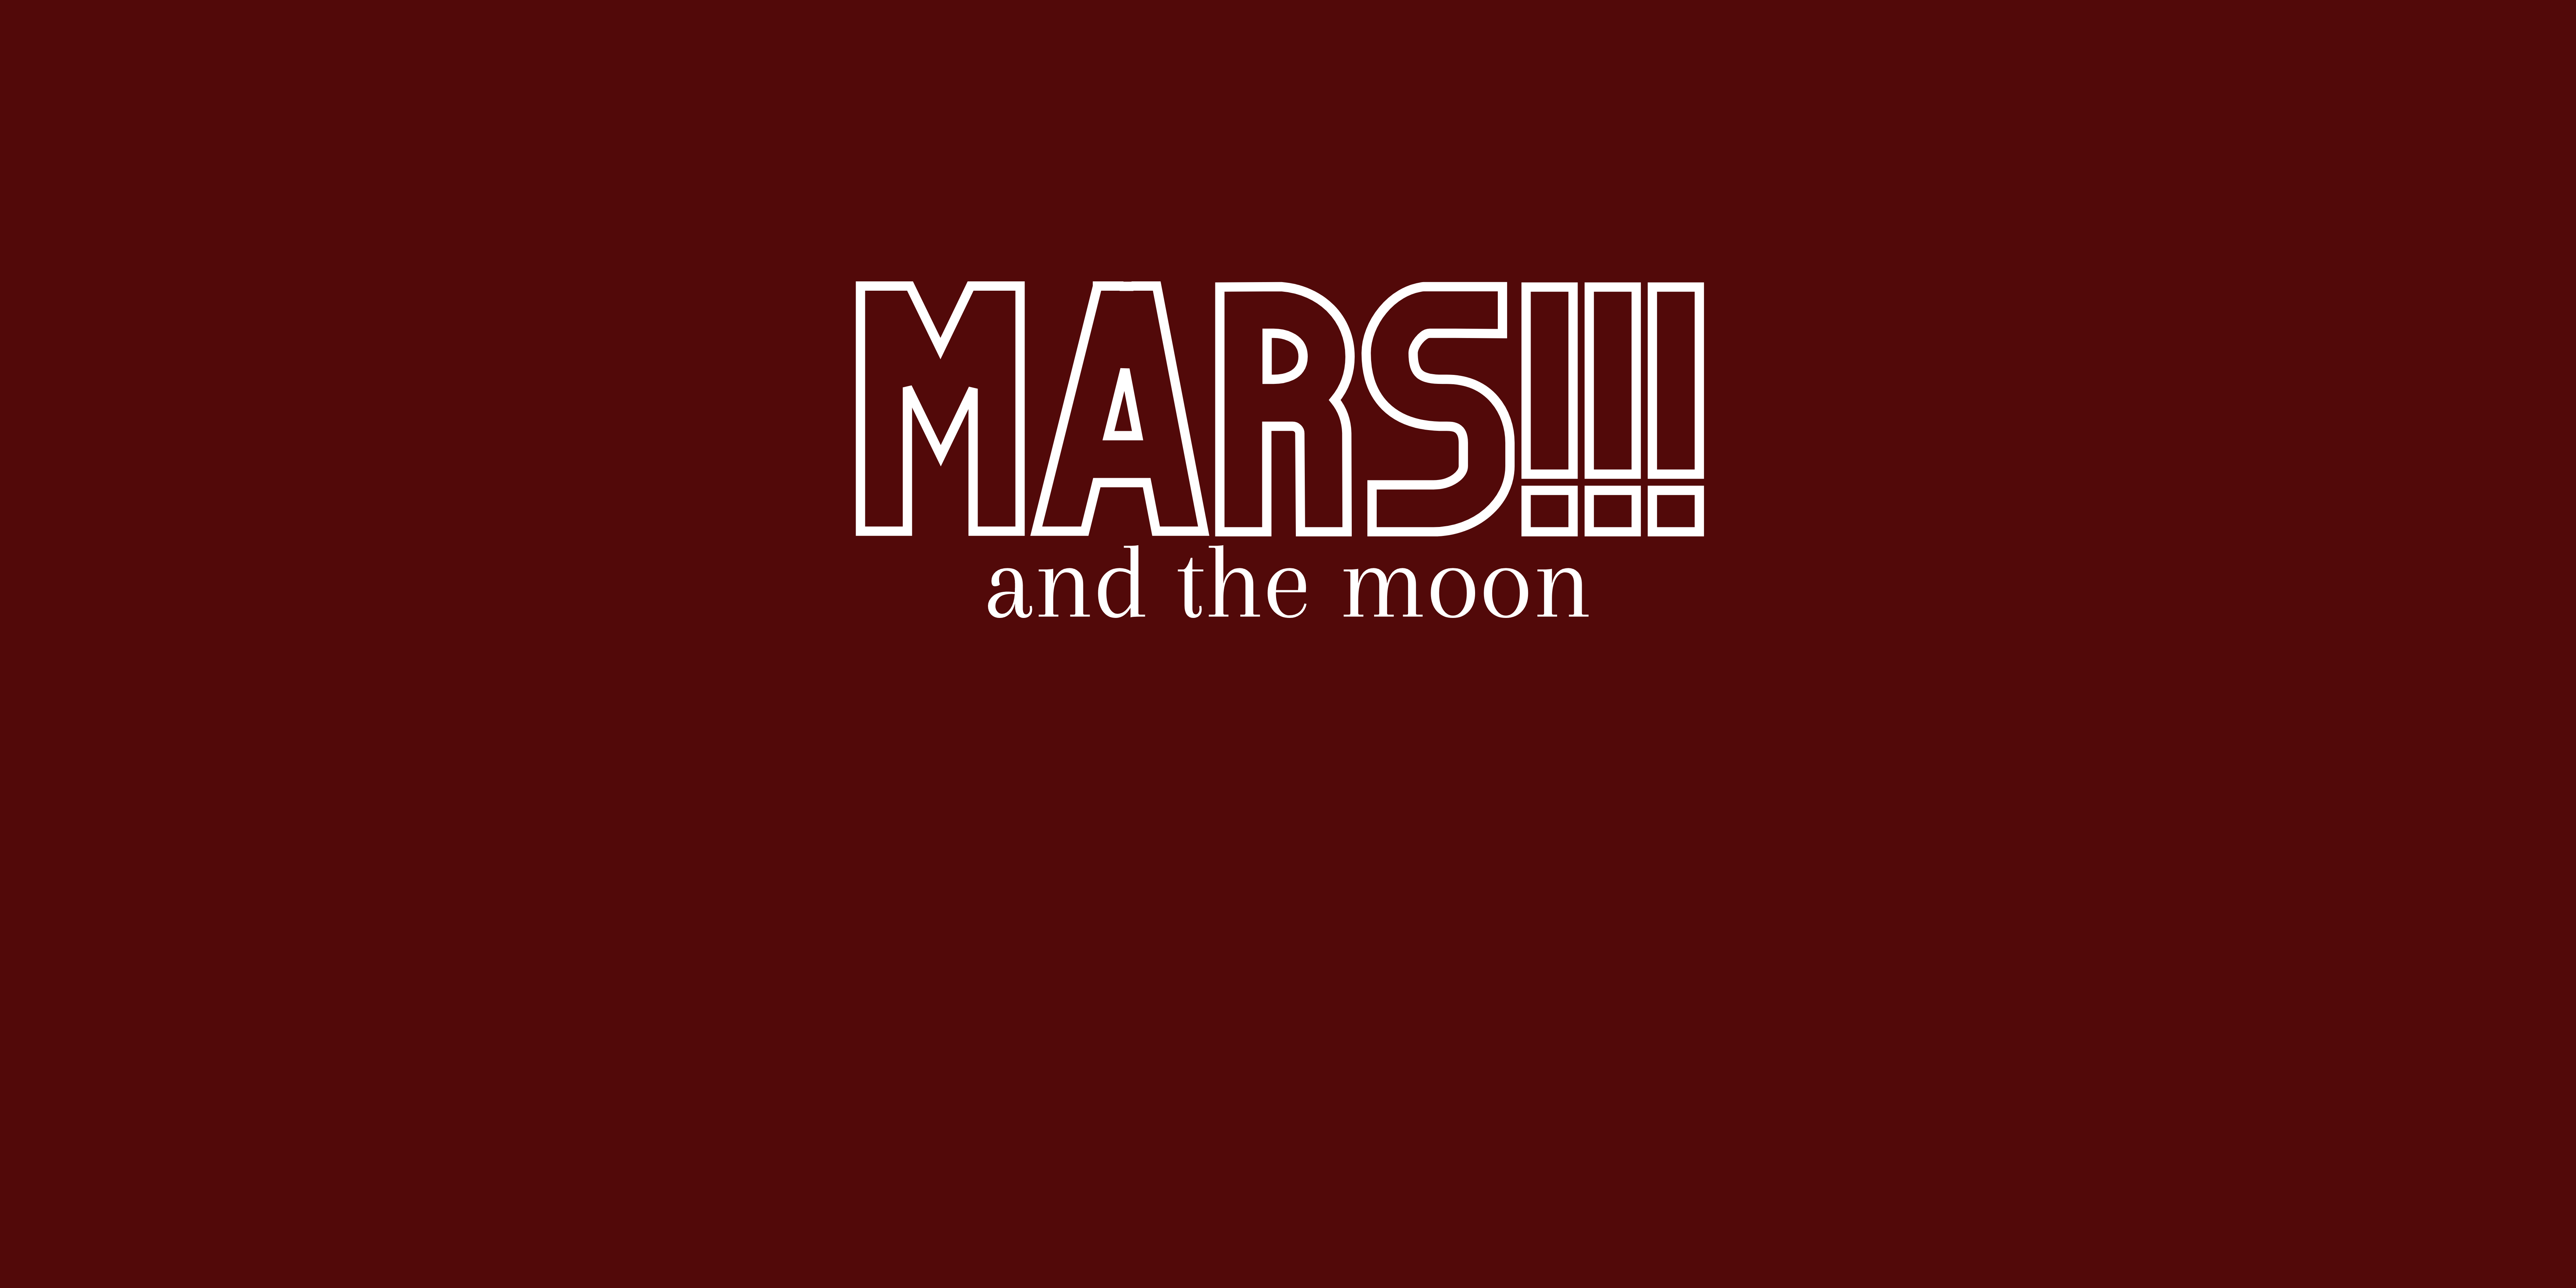 A simple MARS and the MOON font. This is the header for how Mars affects the moon placement in magic and astrology.